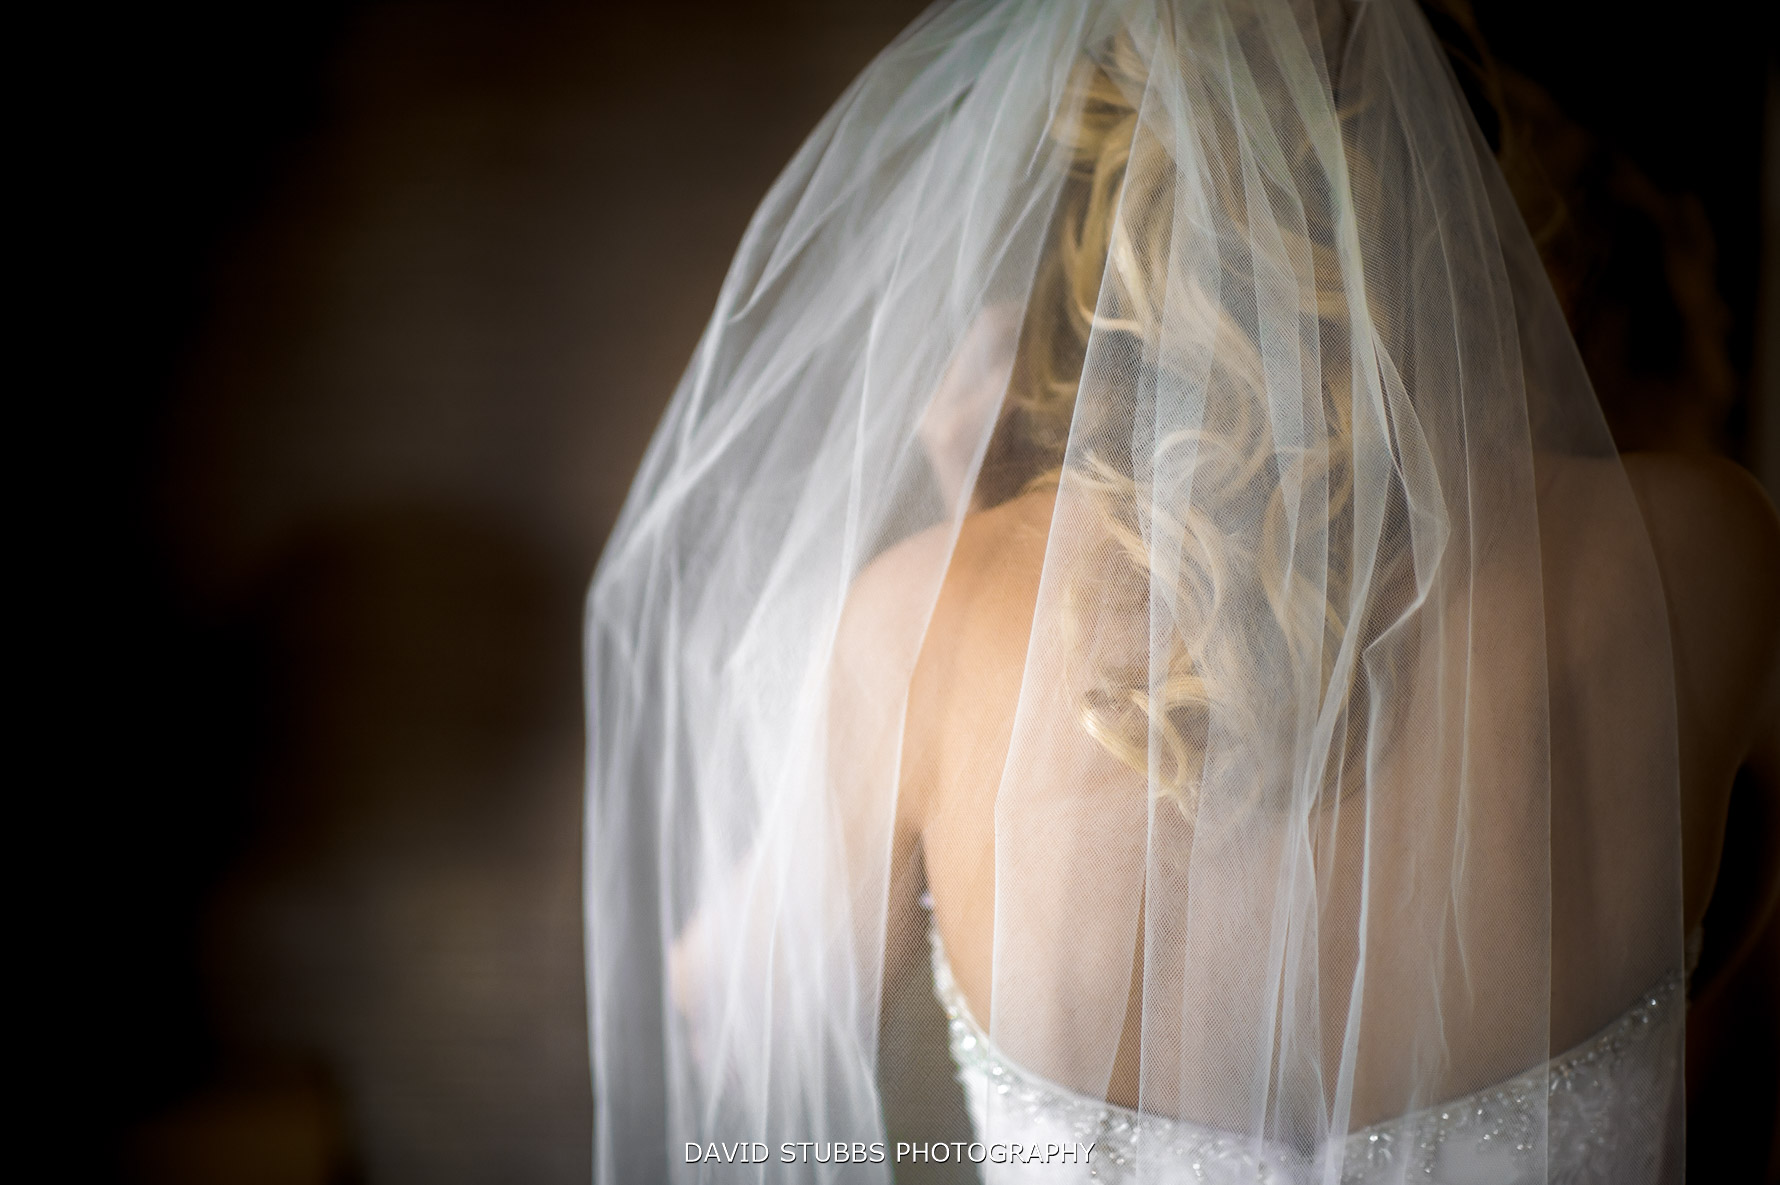 veil detail from behind